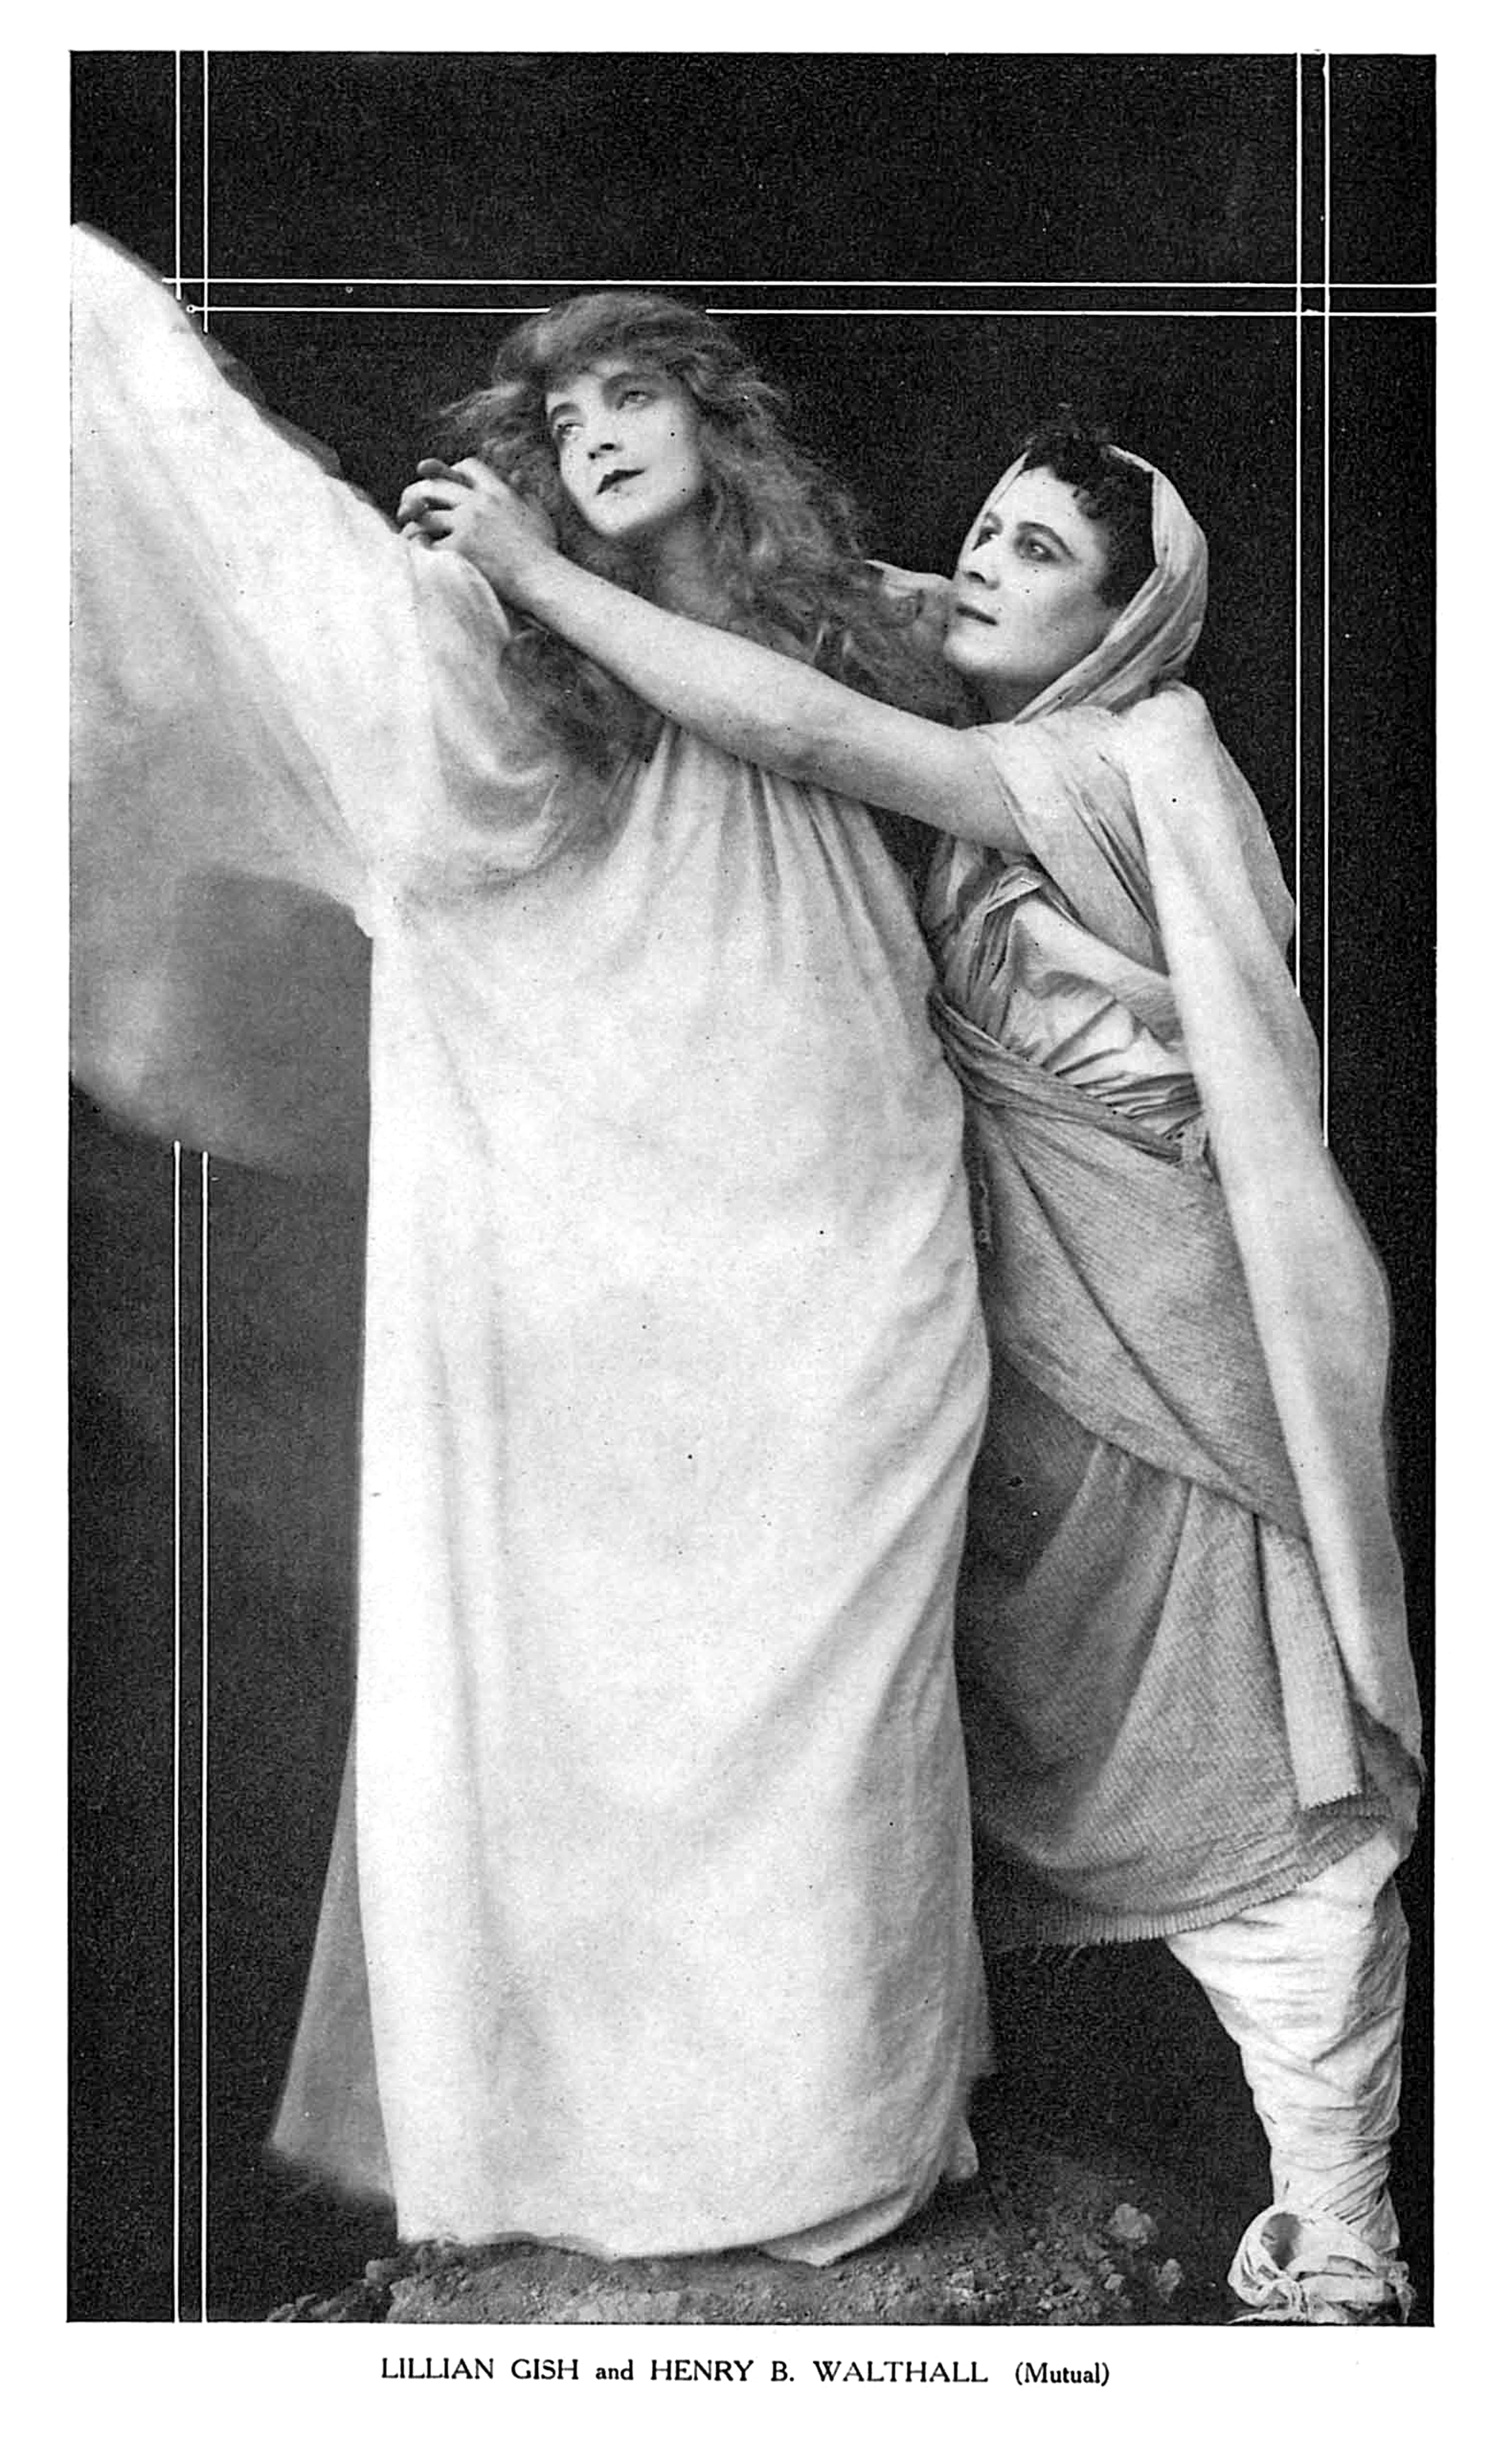 Lillian Gish and Henry B. Walthall in Home, Sweet Home (1914)